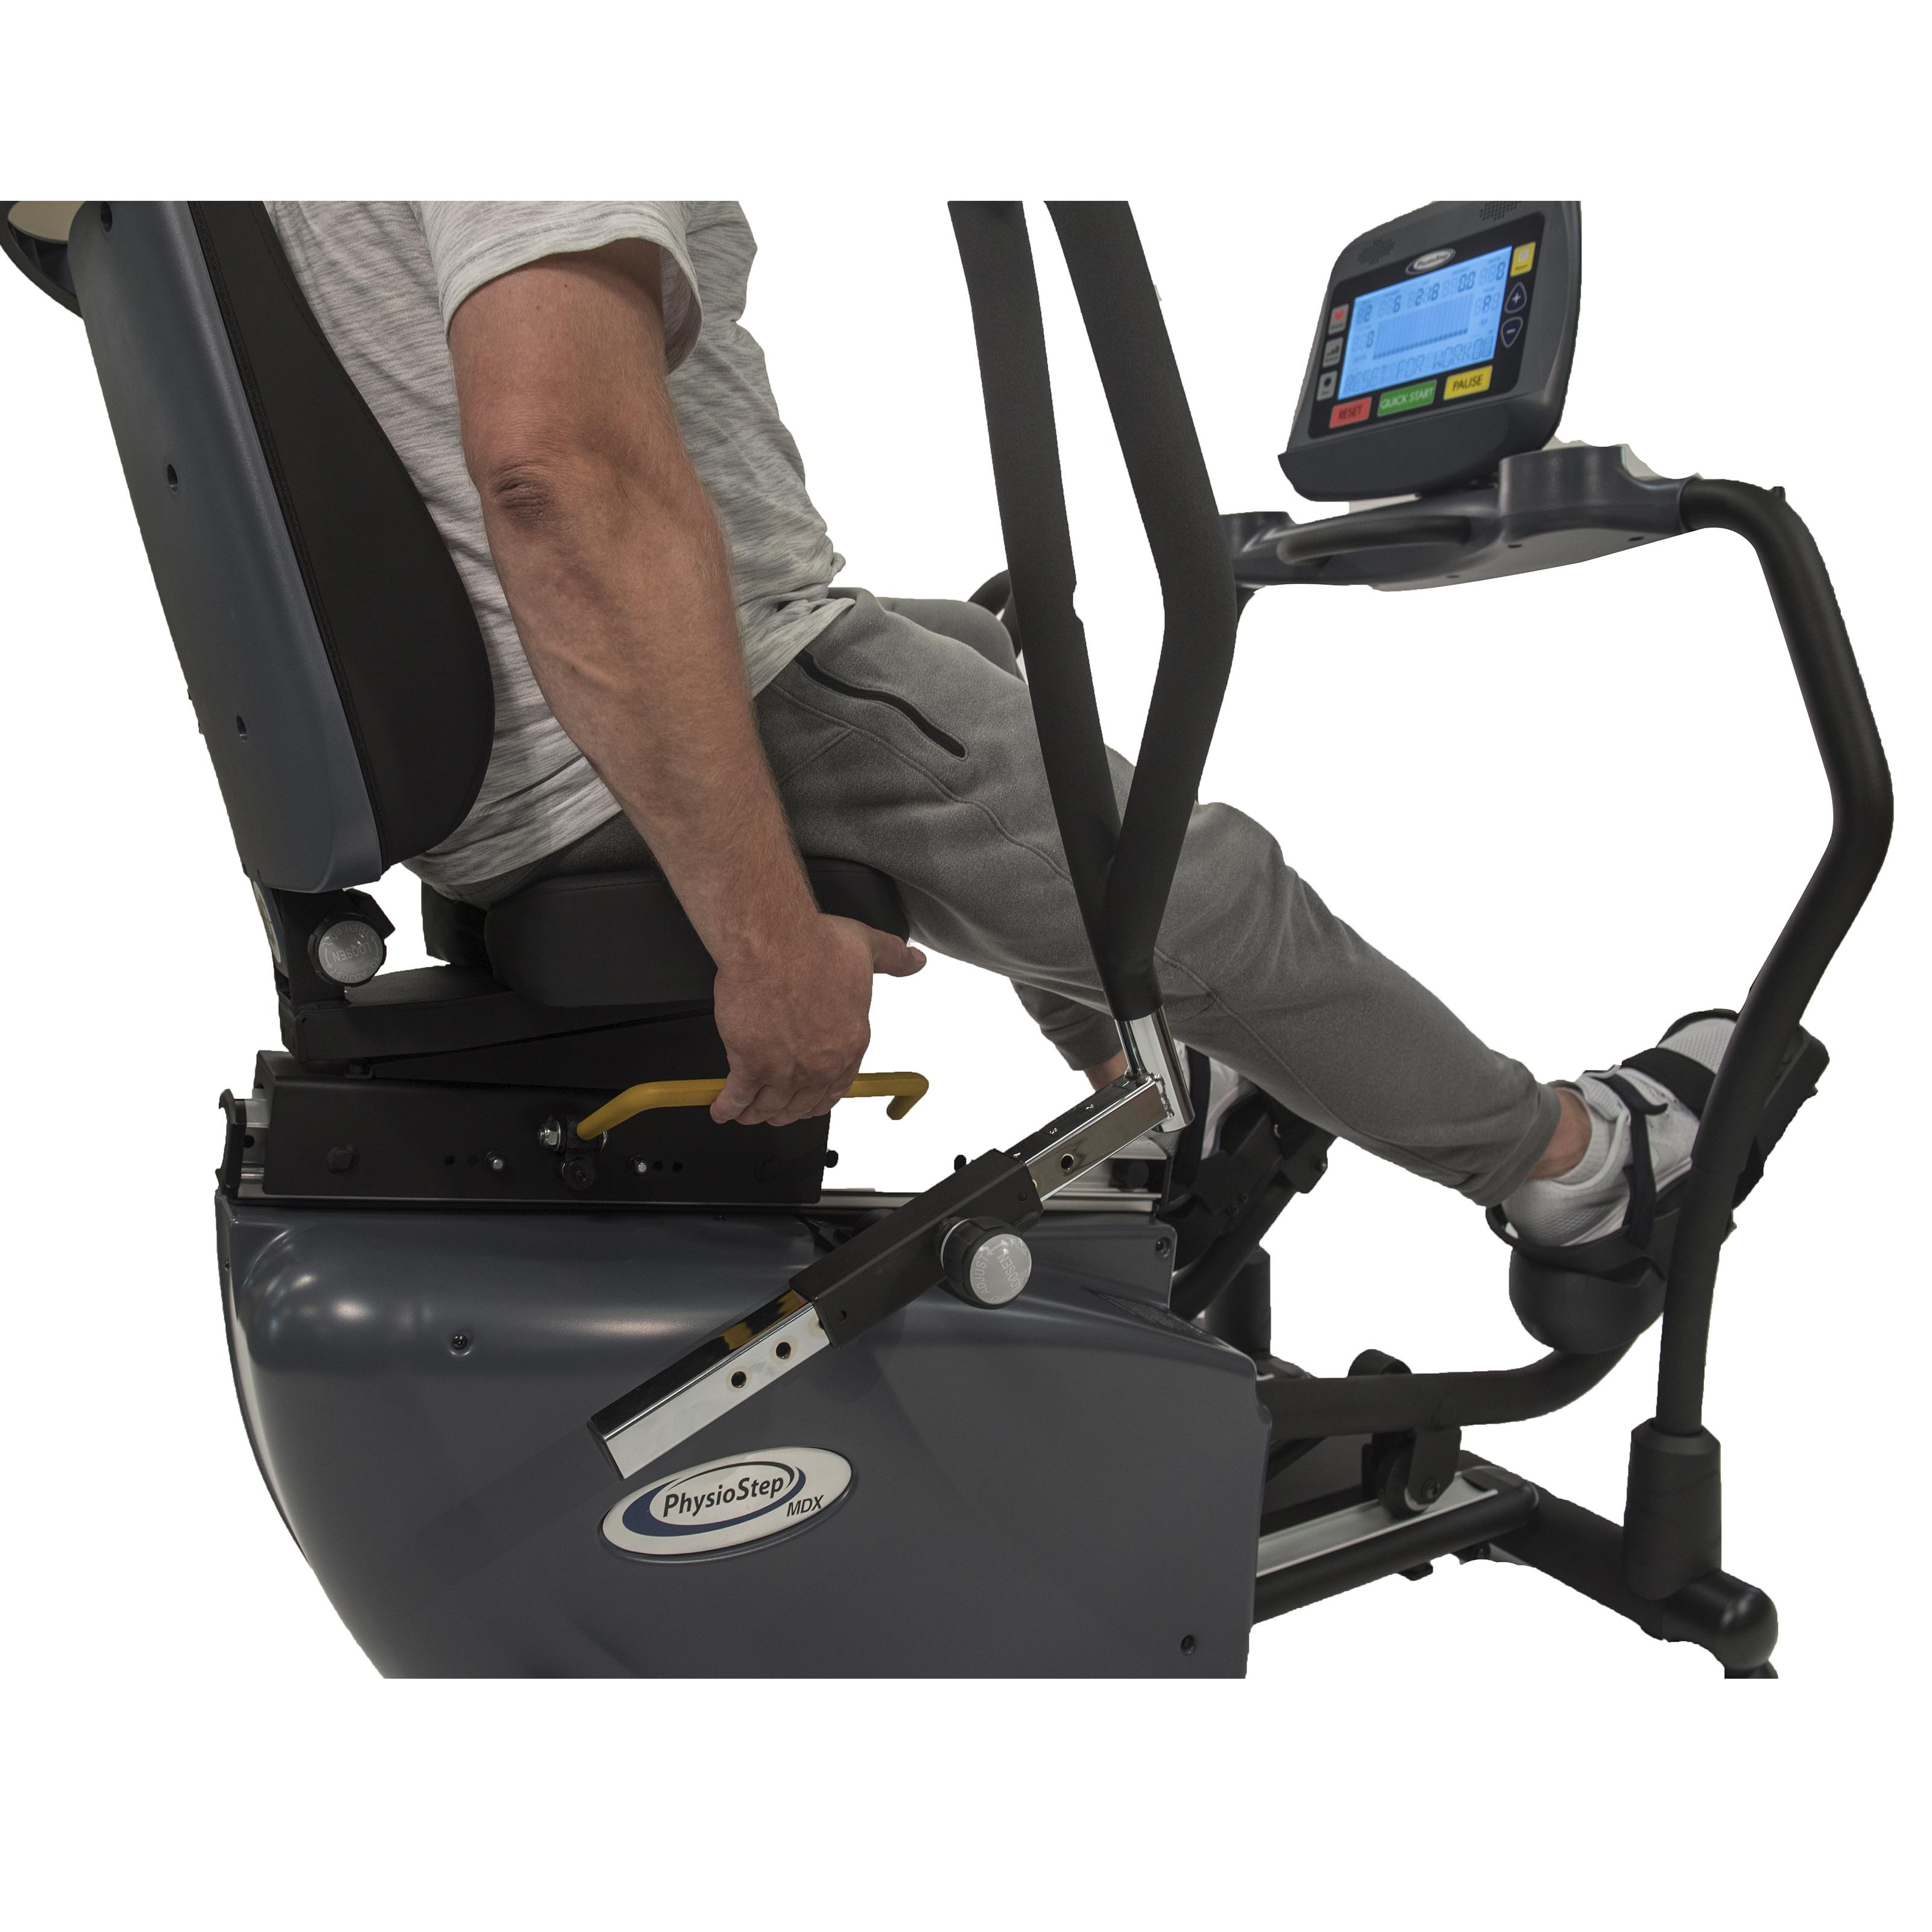 PhysioStep MDX Recumbent Elliptical Seat Adjustments